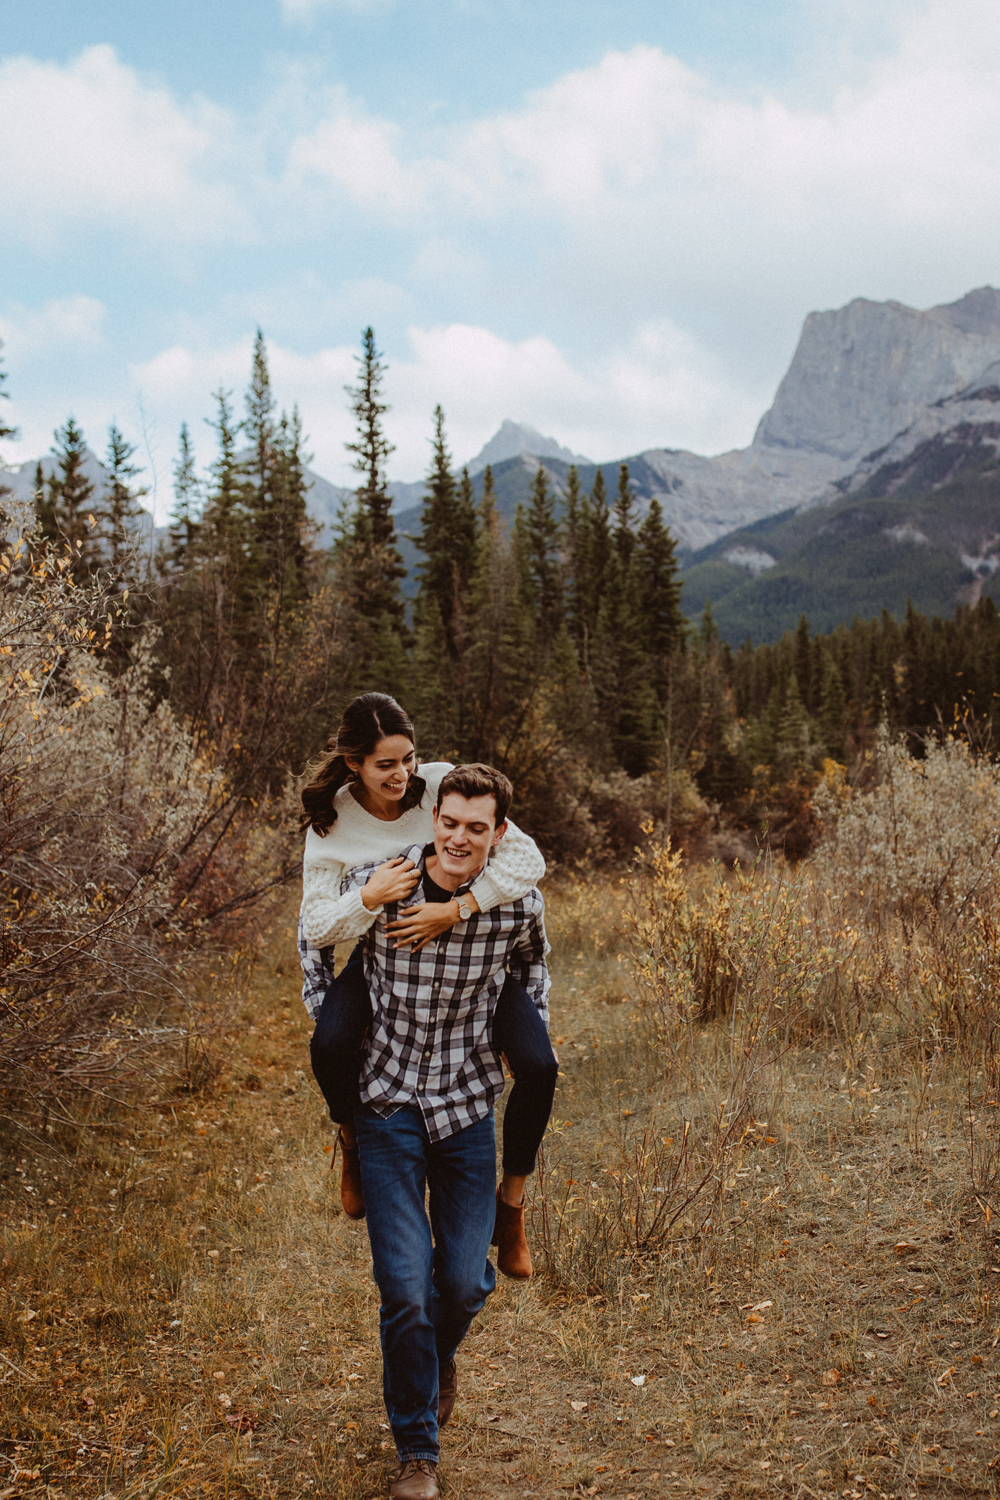 Engagement photography piggy back ride